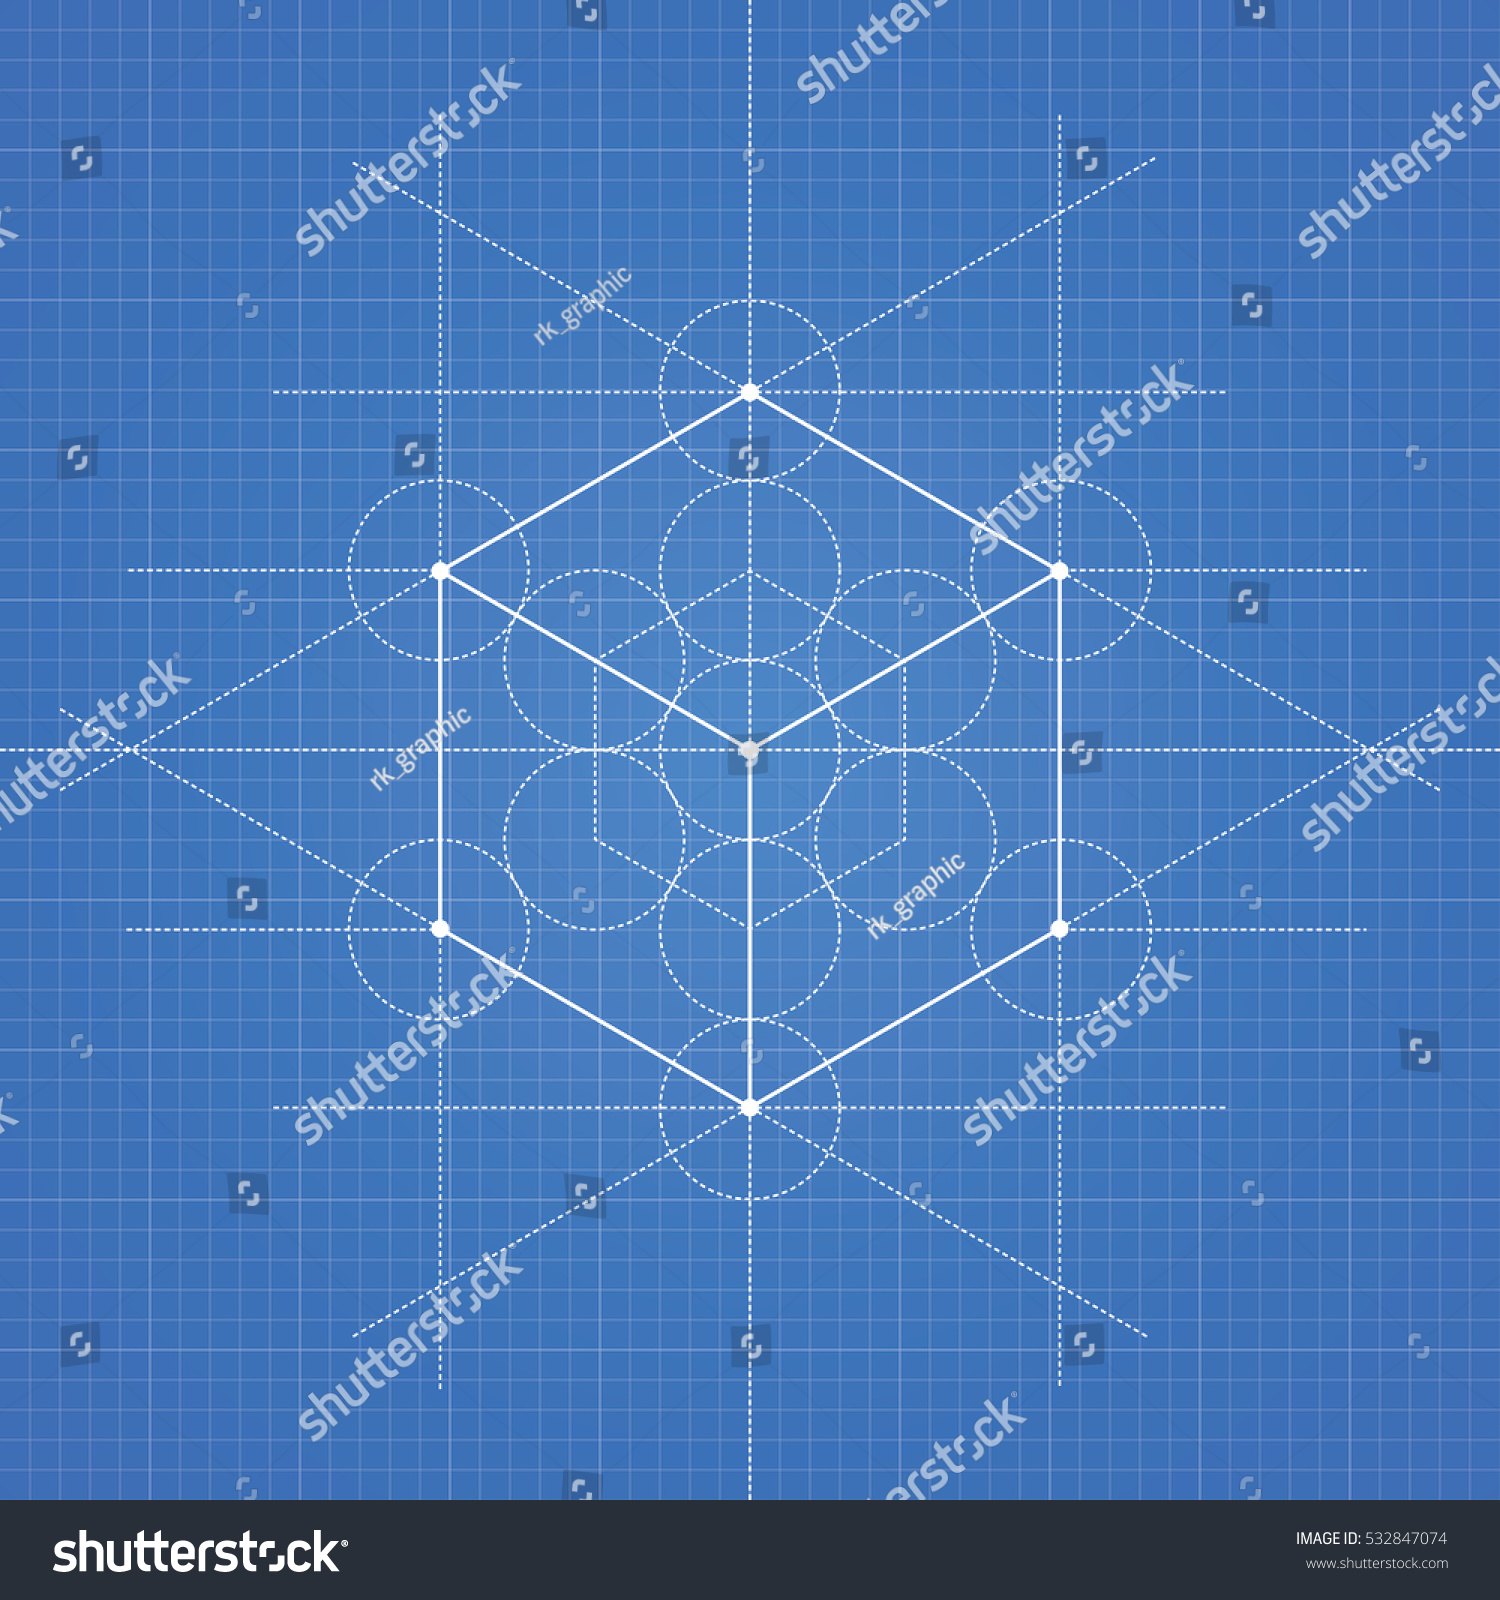 Hexahedron A Vector Illustration Of On Blueprint Technical Paper Background